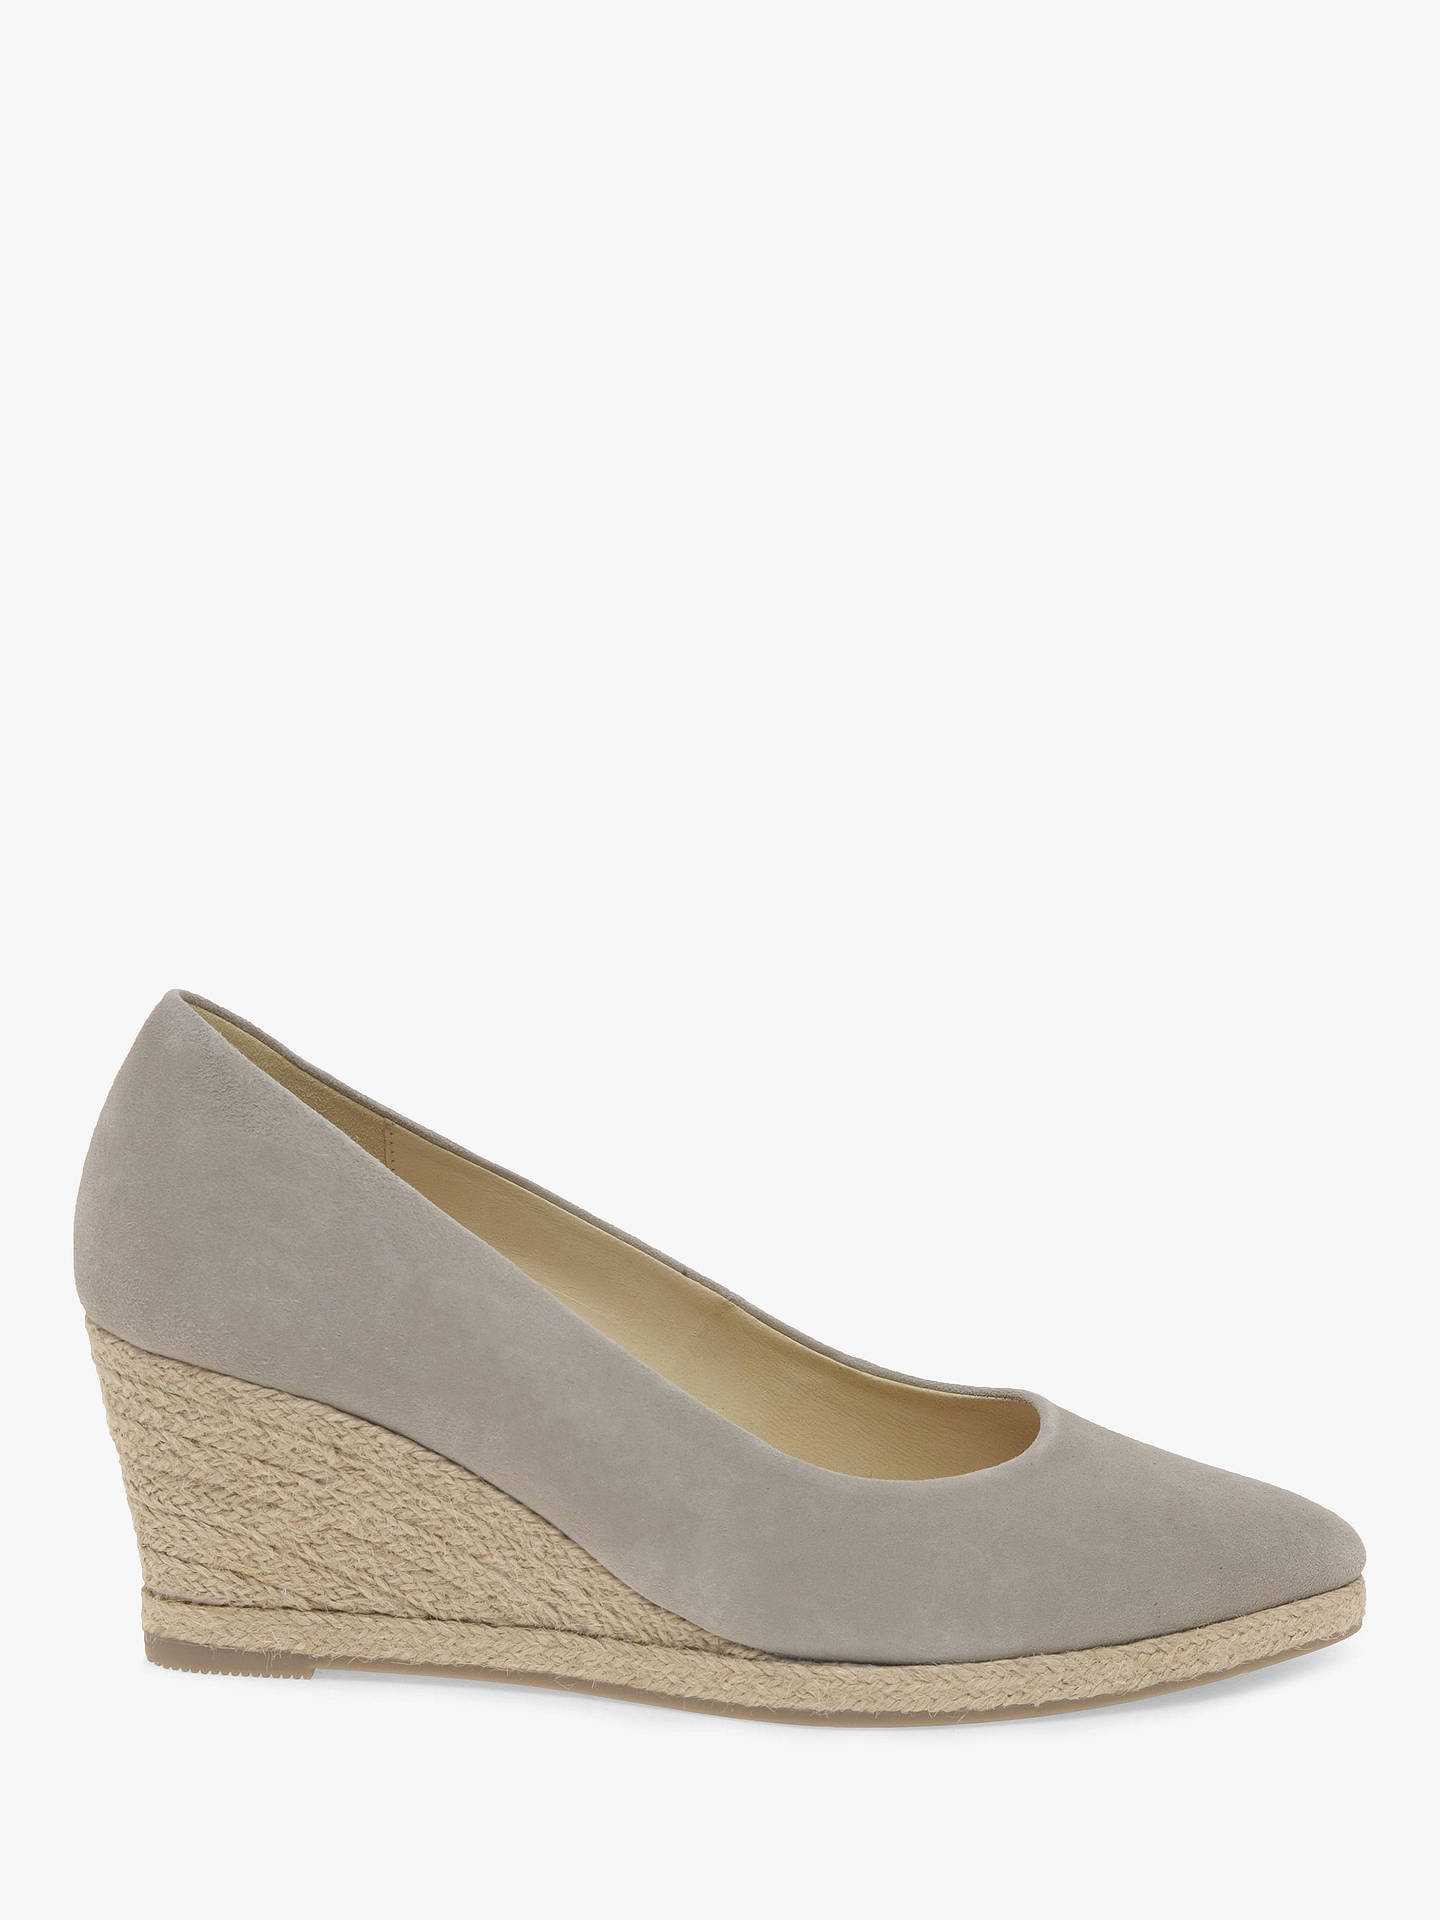 b29891c951b Gabor Paisley Espadrille Wedge Heel Court Shoes, Taupe Nubuck